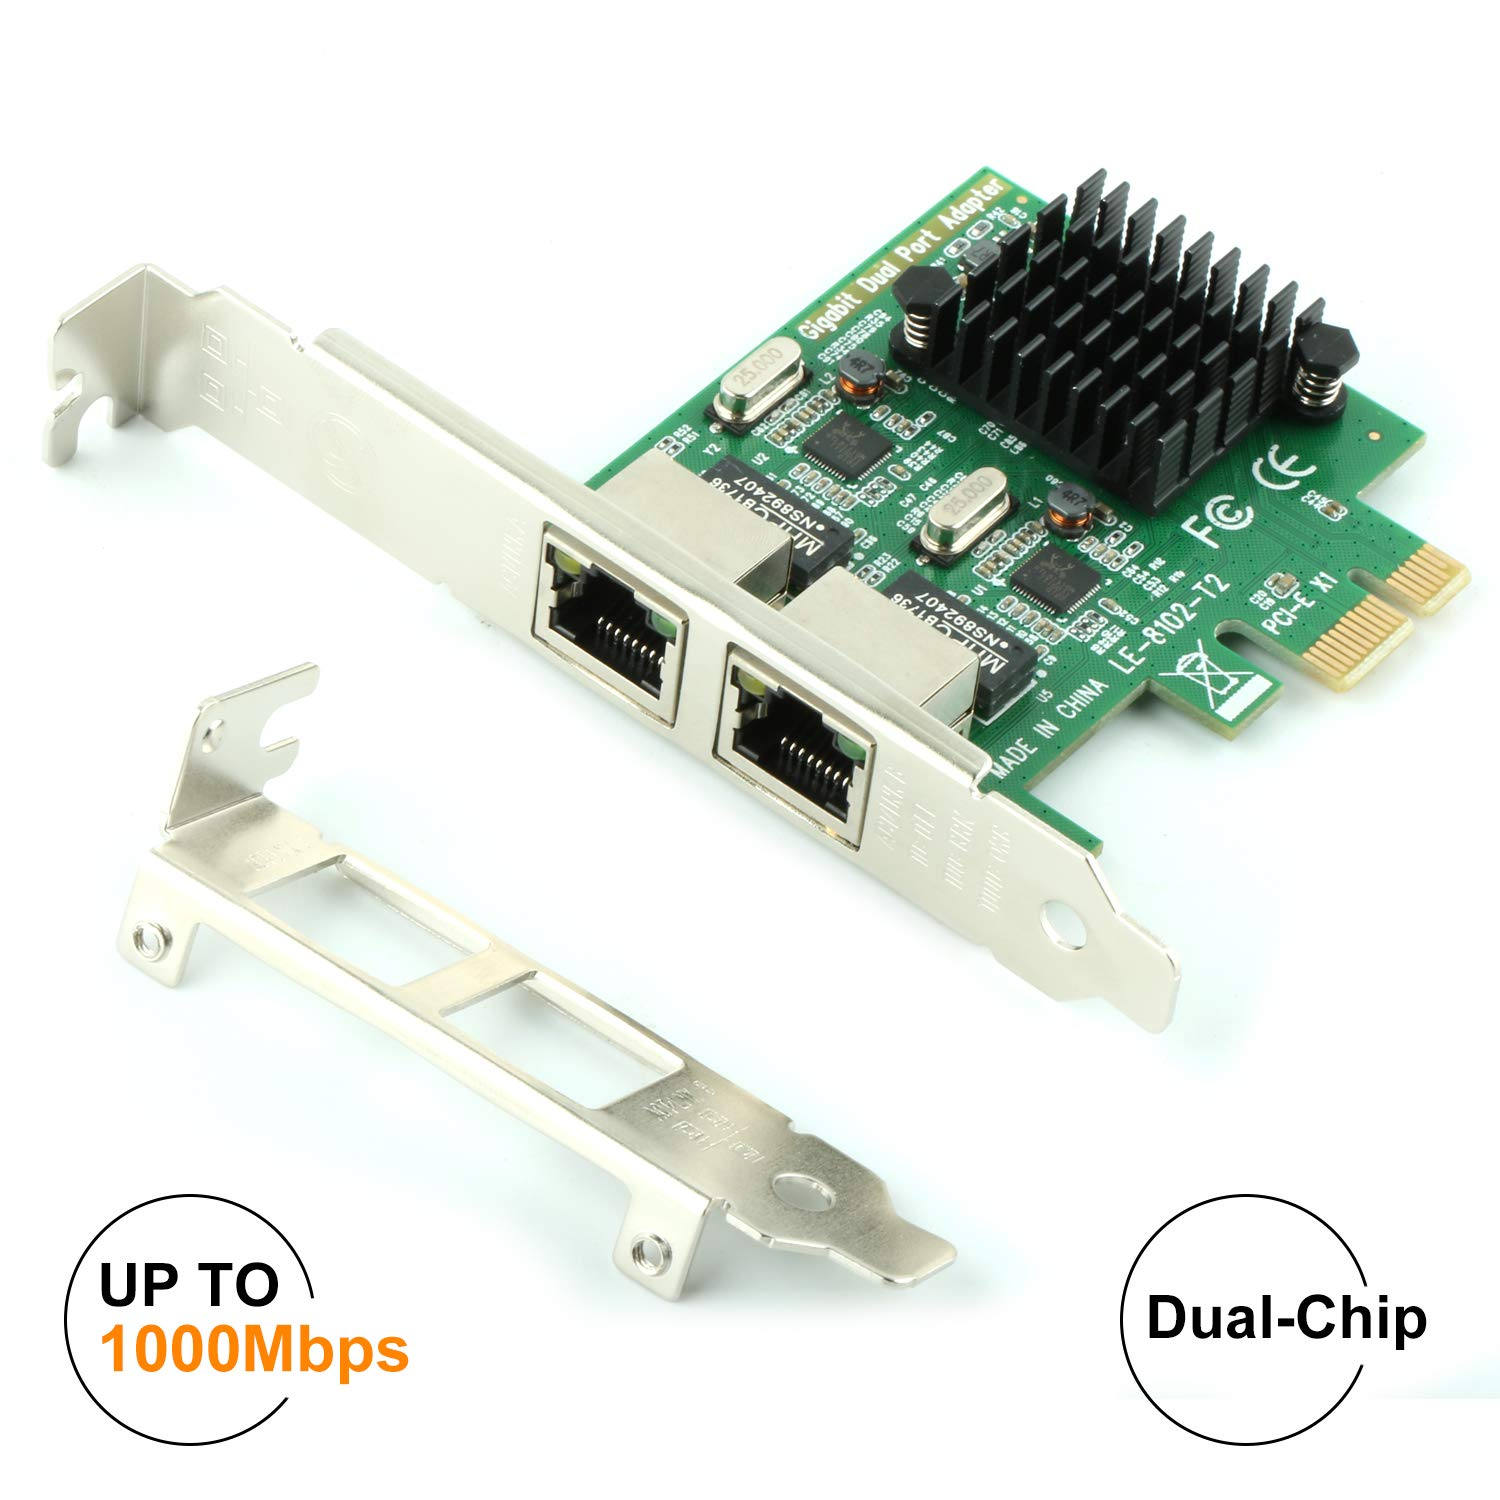 Ubit RJ45 x 2 Gigabit LAN,Gigabit Ethernet PCI Express PCI-E Network Controller Card,10/100/1000mbps,Dual Port PCIE Server Network Interface Card, LAN Adapter Converter for Desktop PC by Ubit